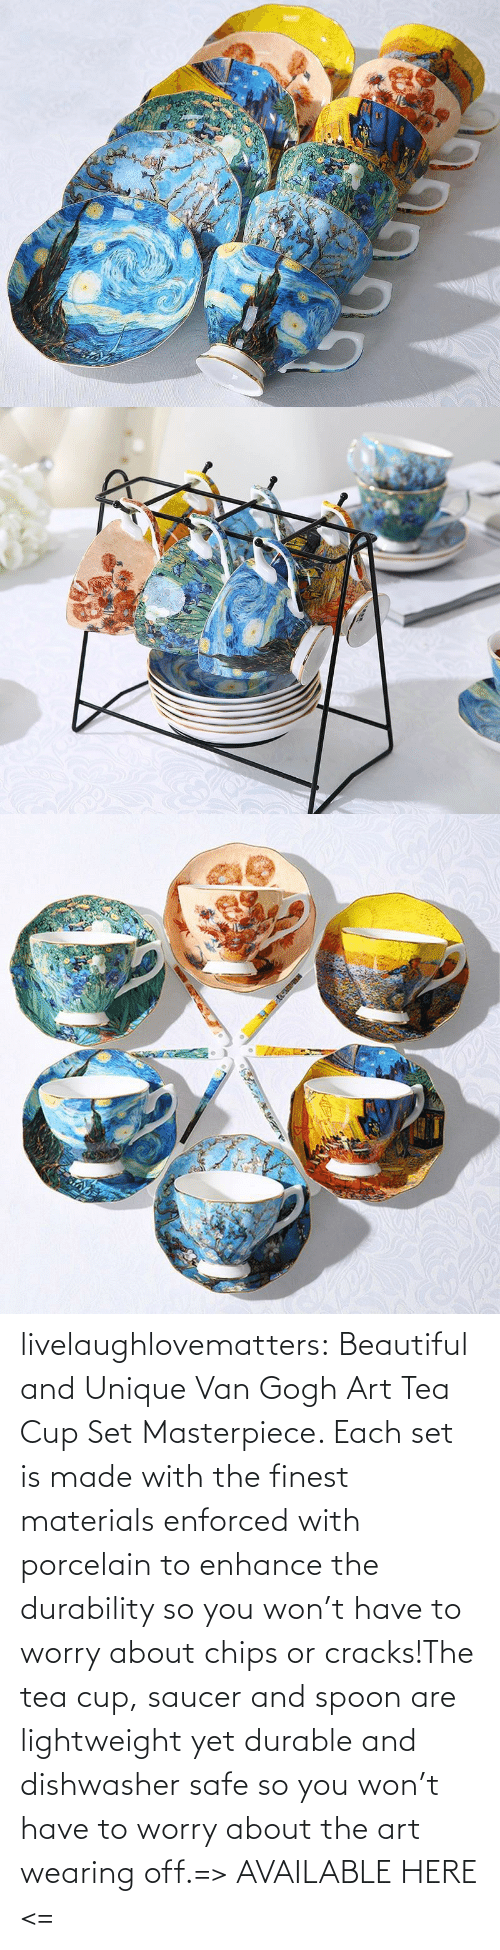 worry: livelaughlovematters:  Beautiful and Unique Van Gogh Art Tea Cup Set Masterpiece. Each set is made with the finest materials enforced with porcelain to enhance the durability so you won't have to worry about chips or cracks!The tea cup, saucer and spoon are lightweight yet durable and dishwasher safe so you won't have to worry about the art wearing off.=> AVAILABLE HERE <=